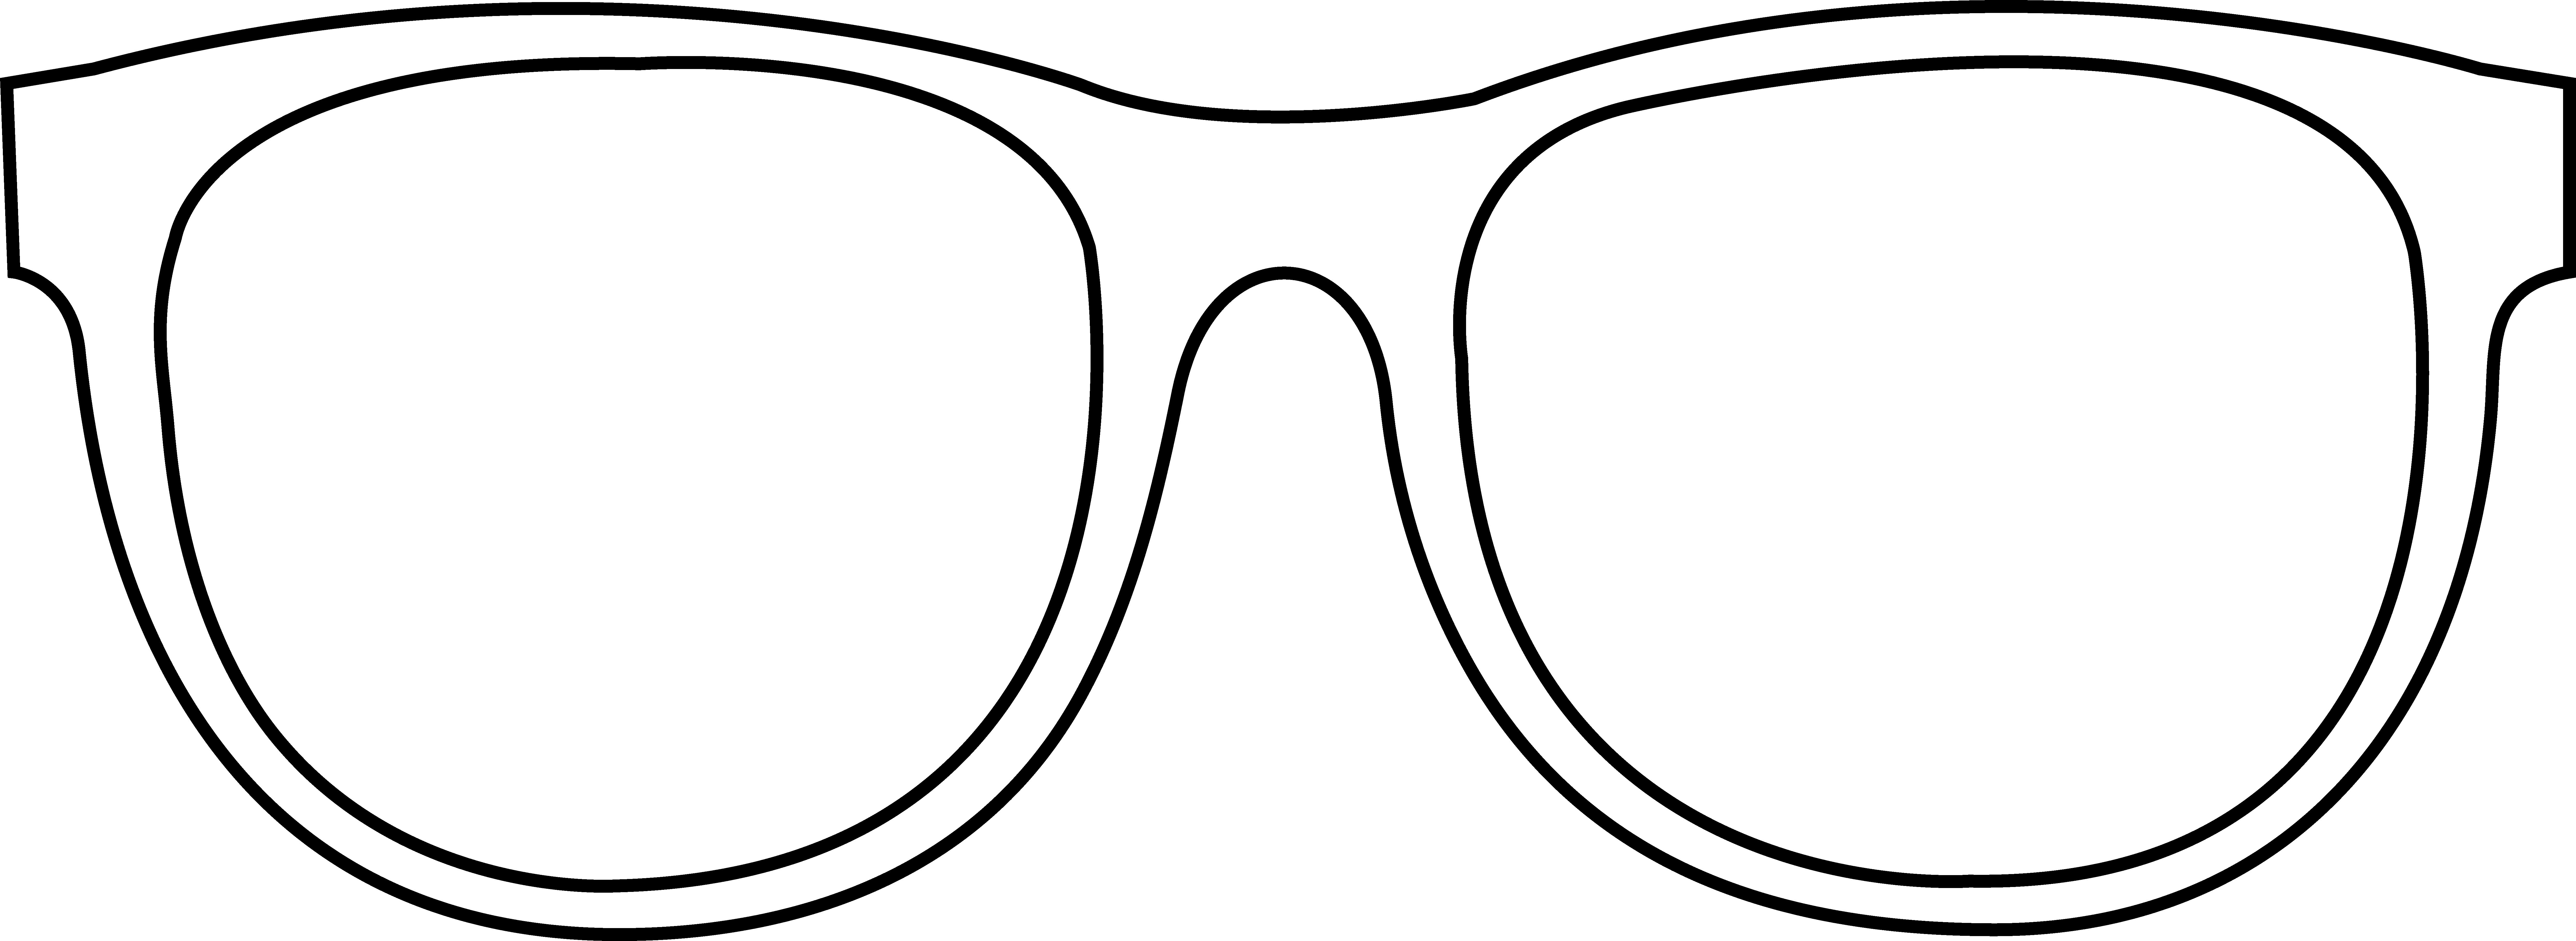 Clipart sunglasses printable. Coloring pages of glasses